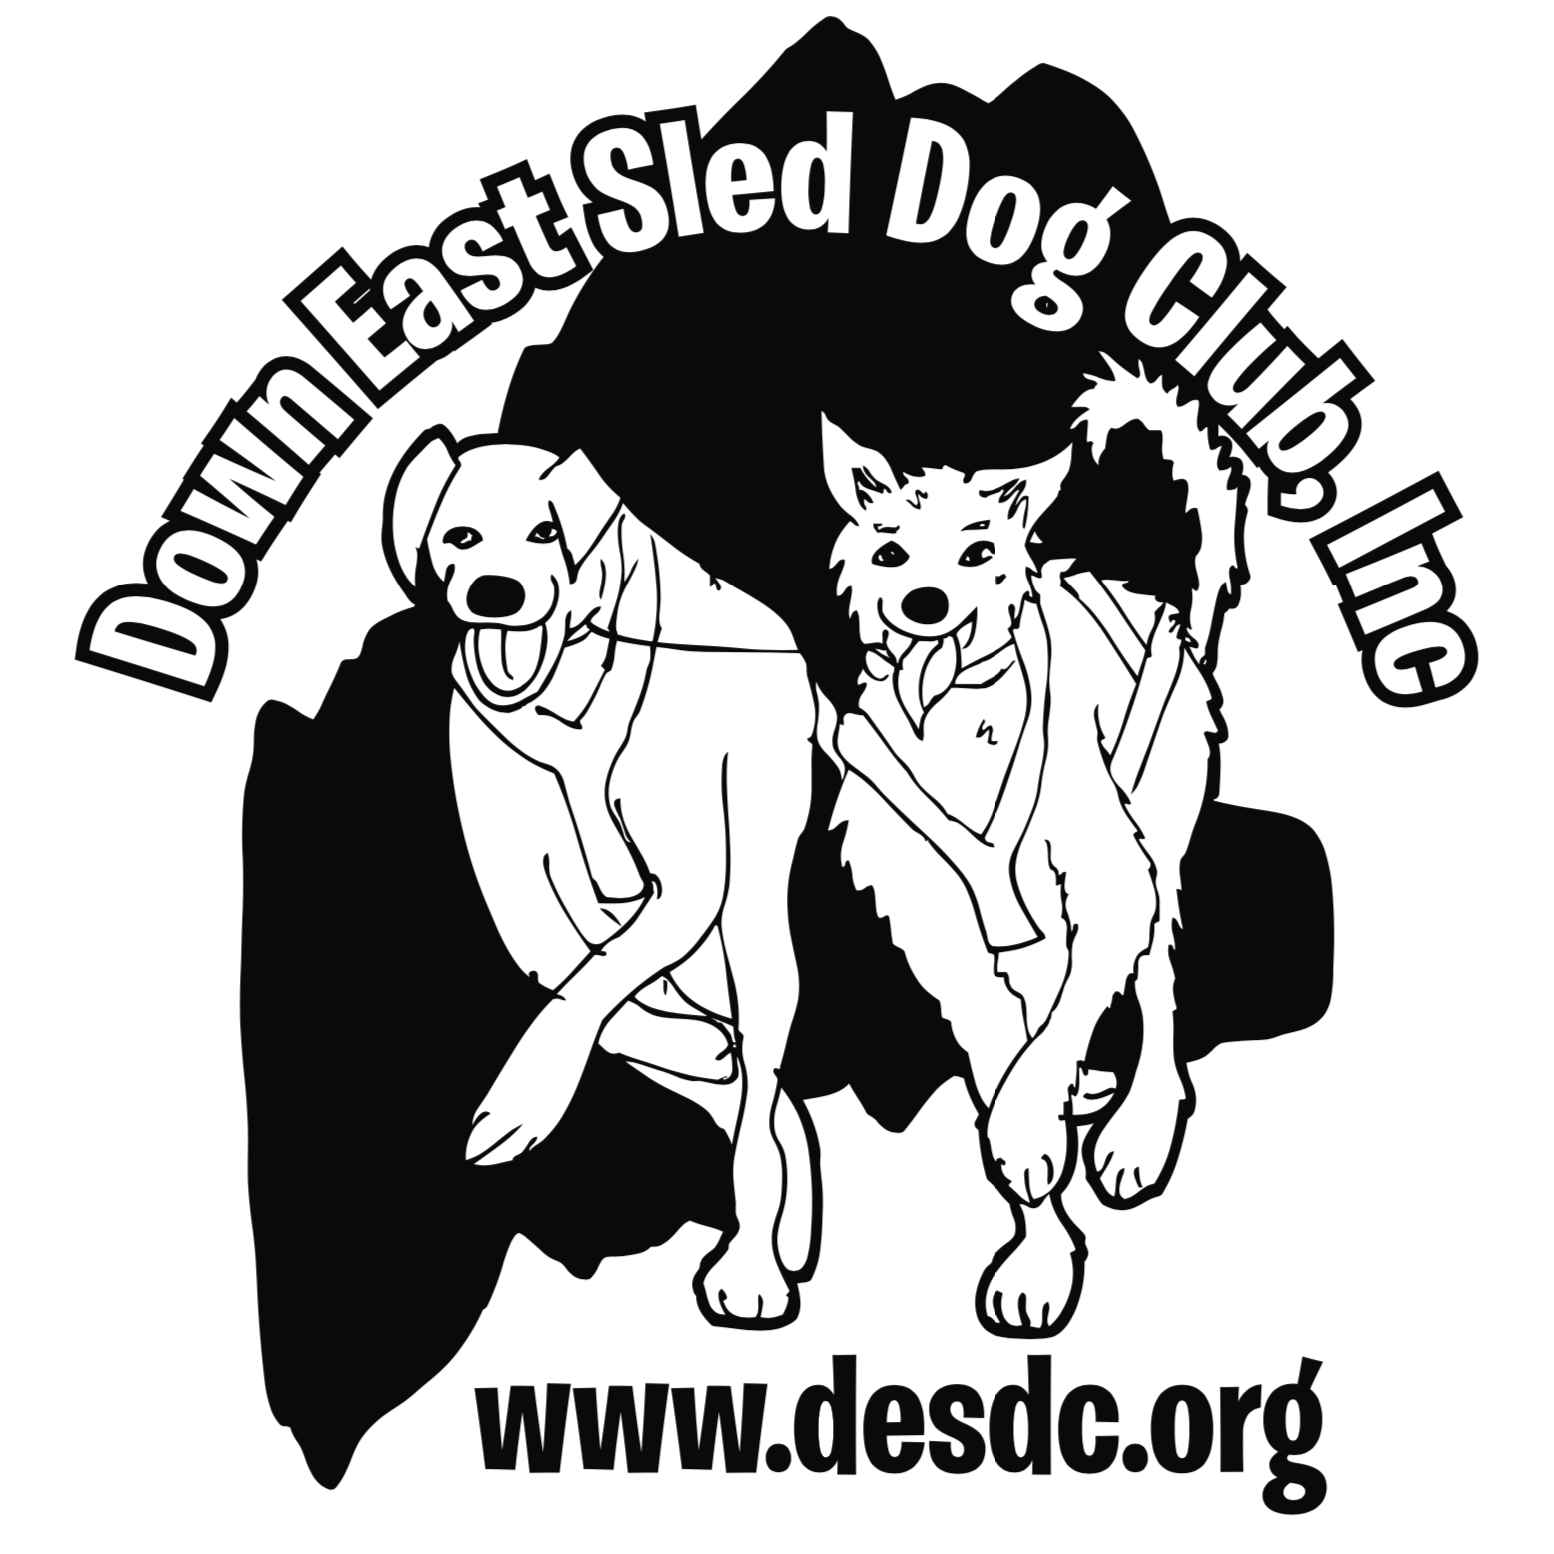 Down East Sled Dog Club